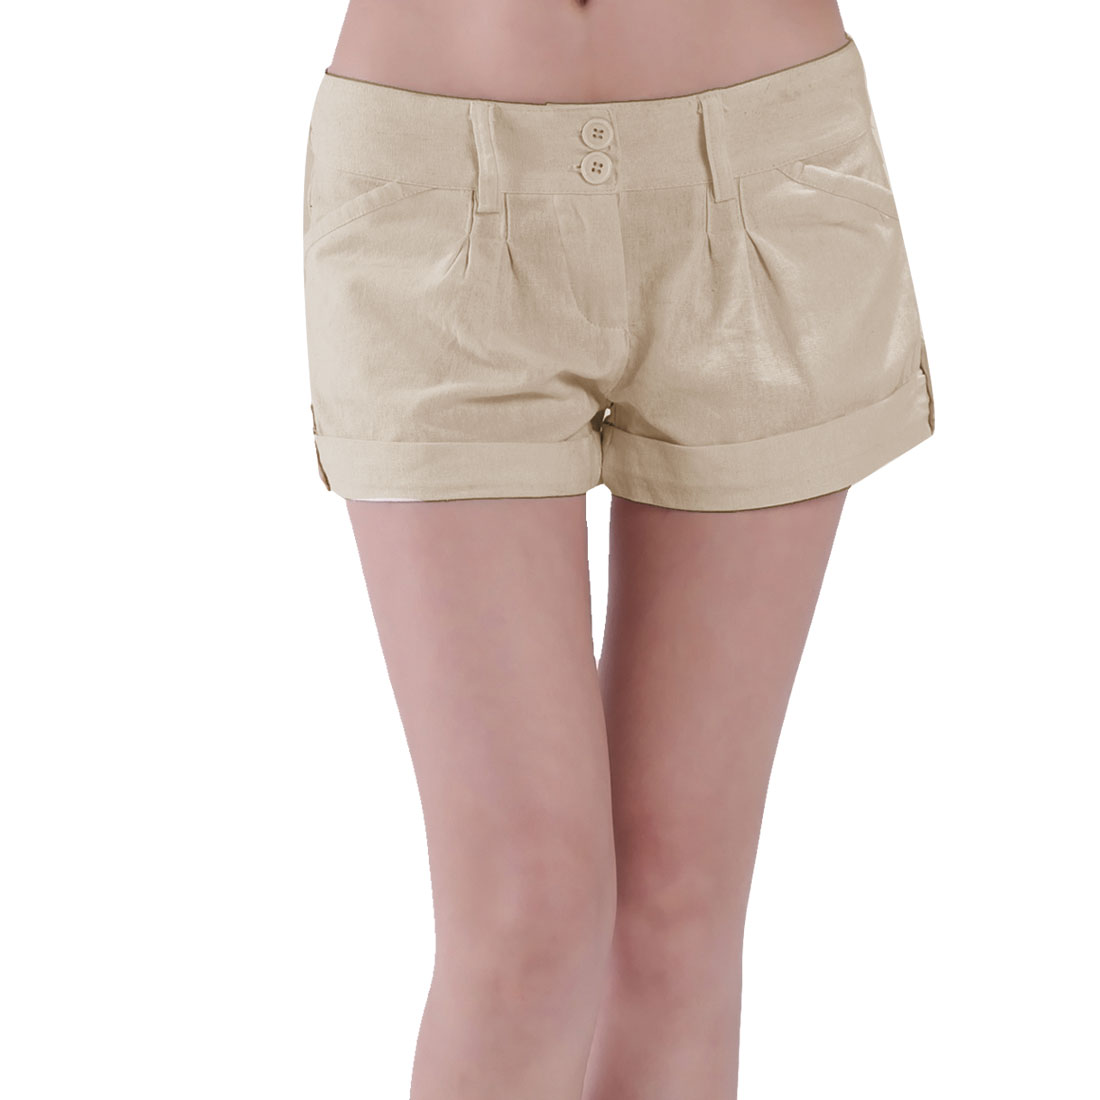 Low Waist Fake Hip Pockets Zippered Short Pants Khaki XL for Women